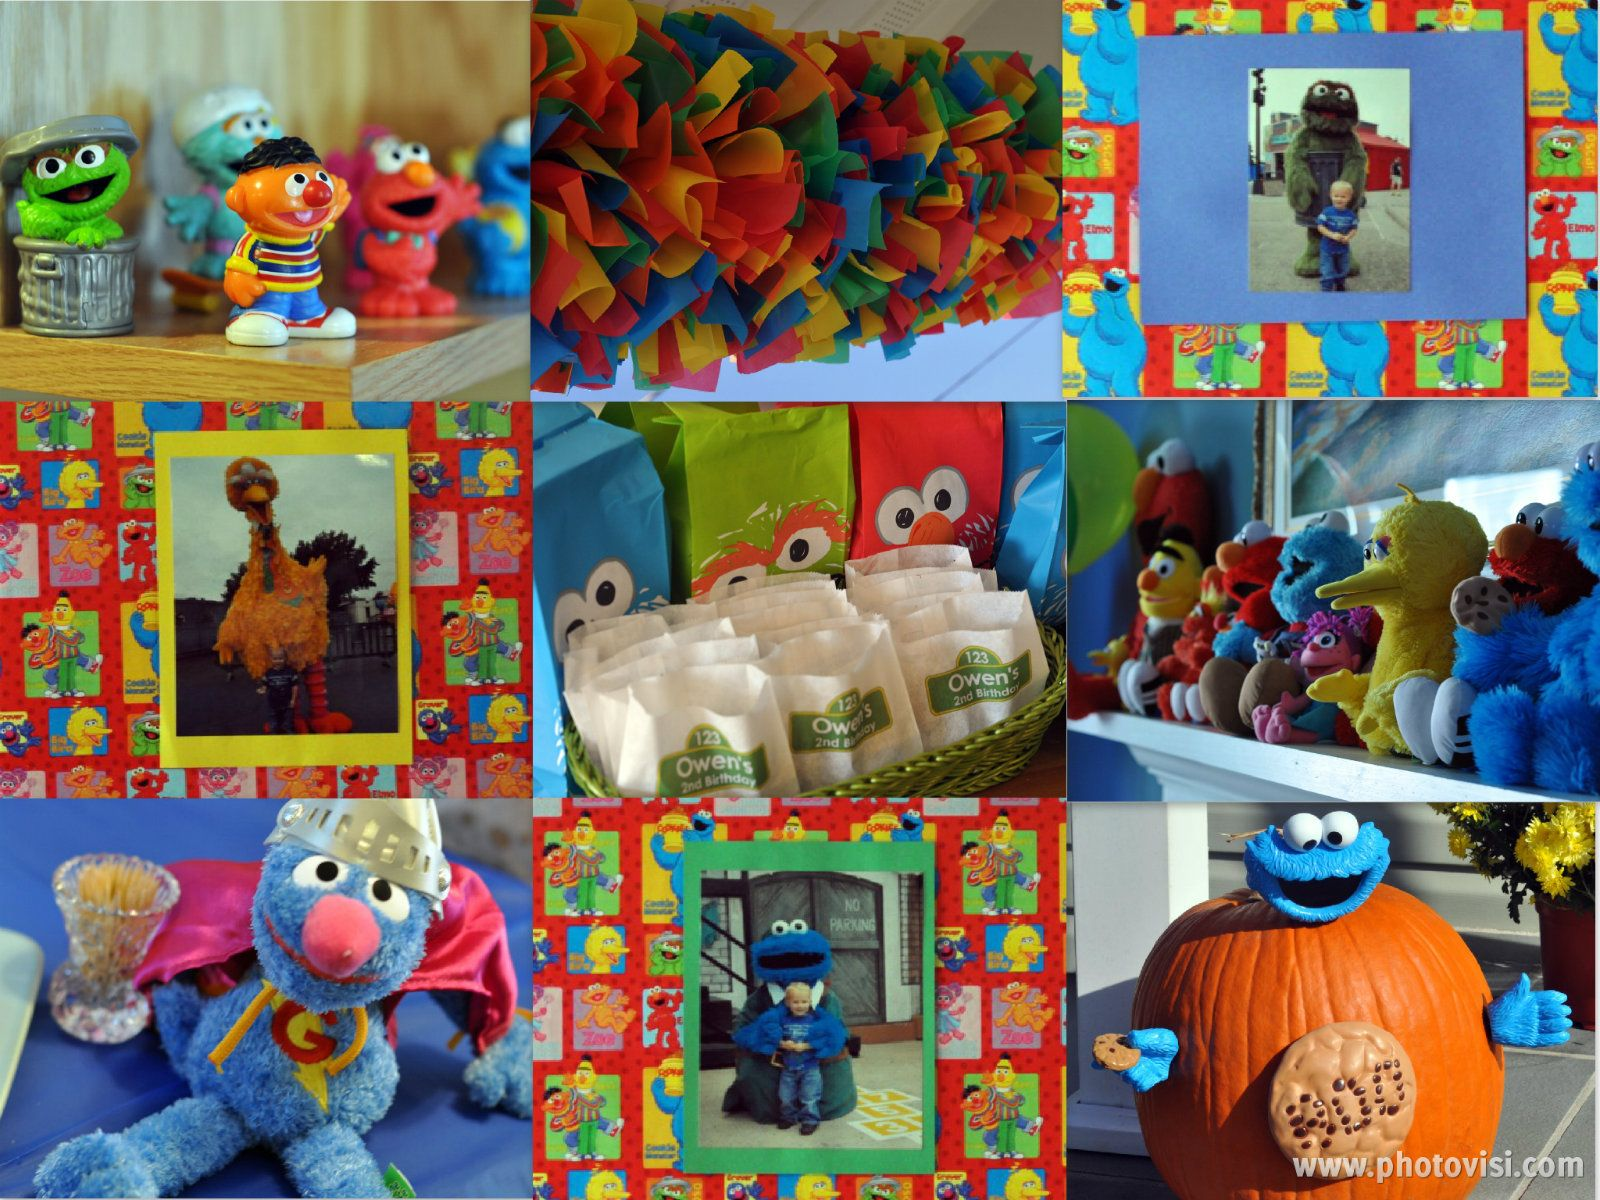 Sesame Street Bedroom Decorations Sesame Street Party Decorations Owens 2nd Birthday Pinterest